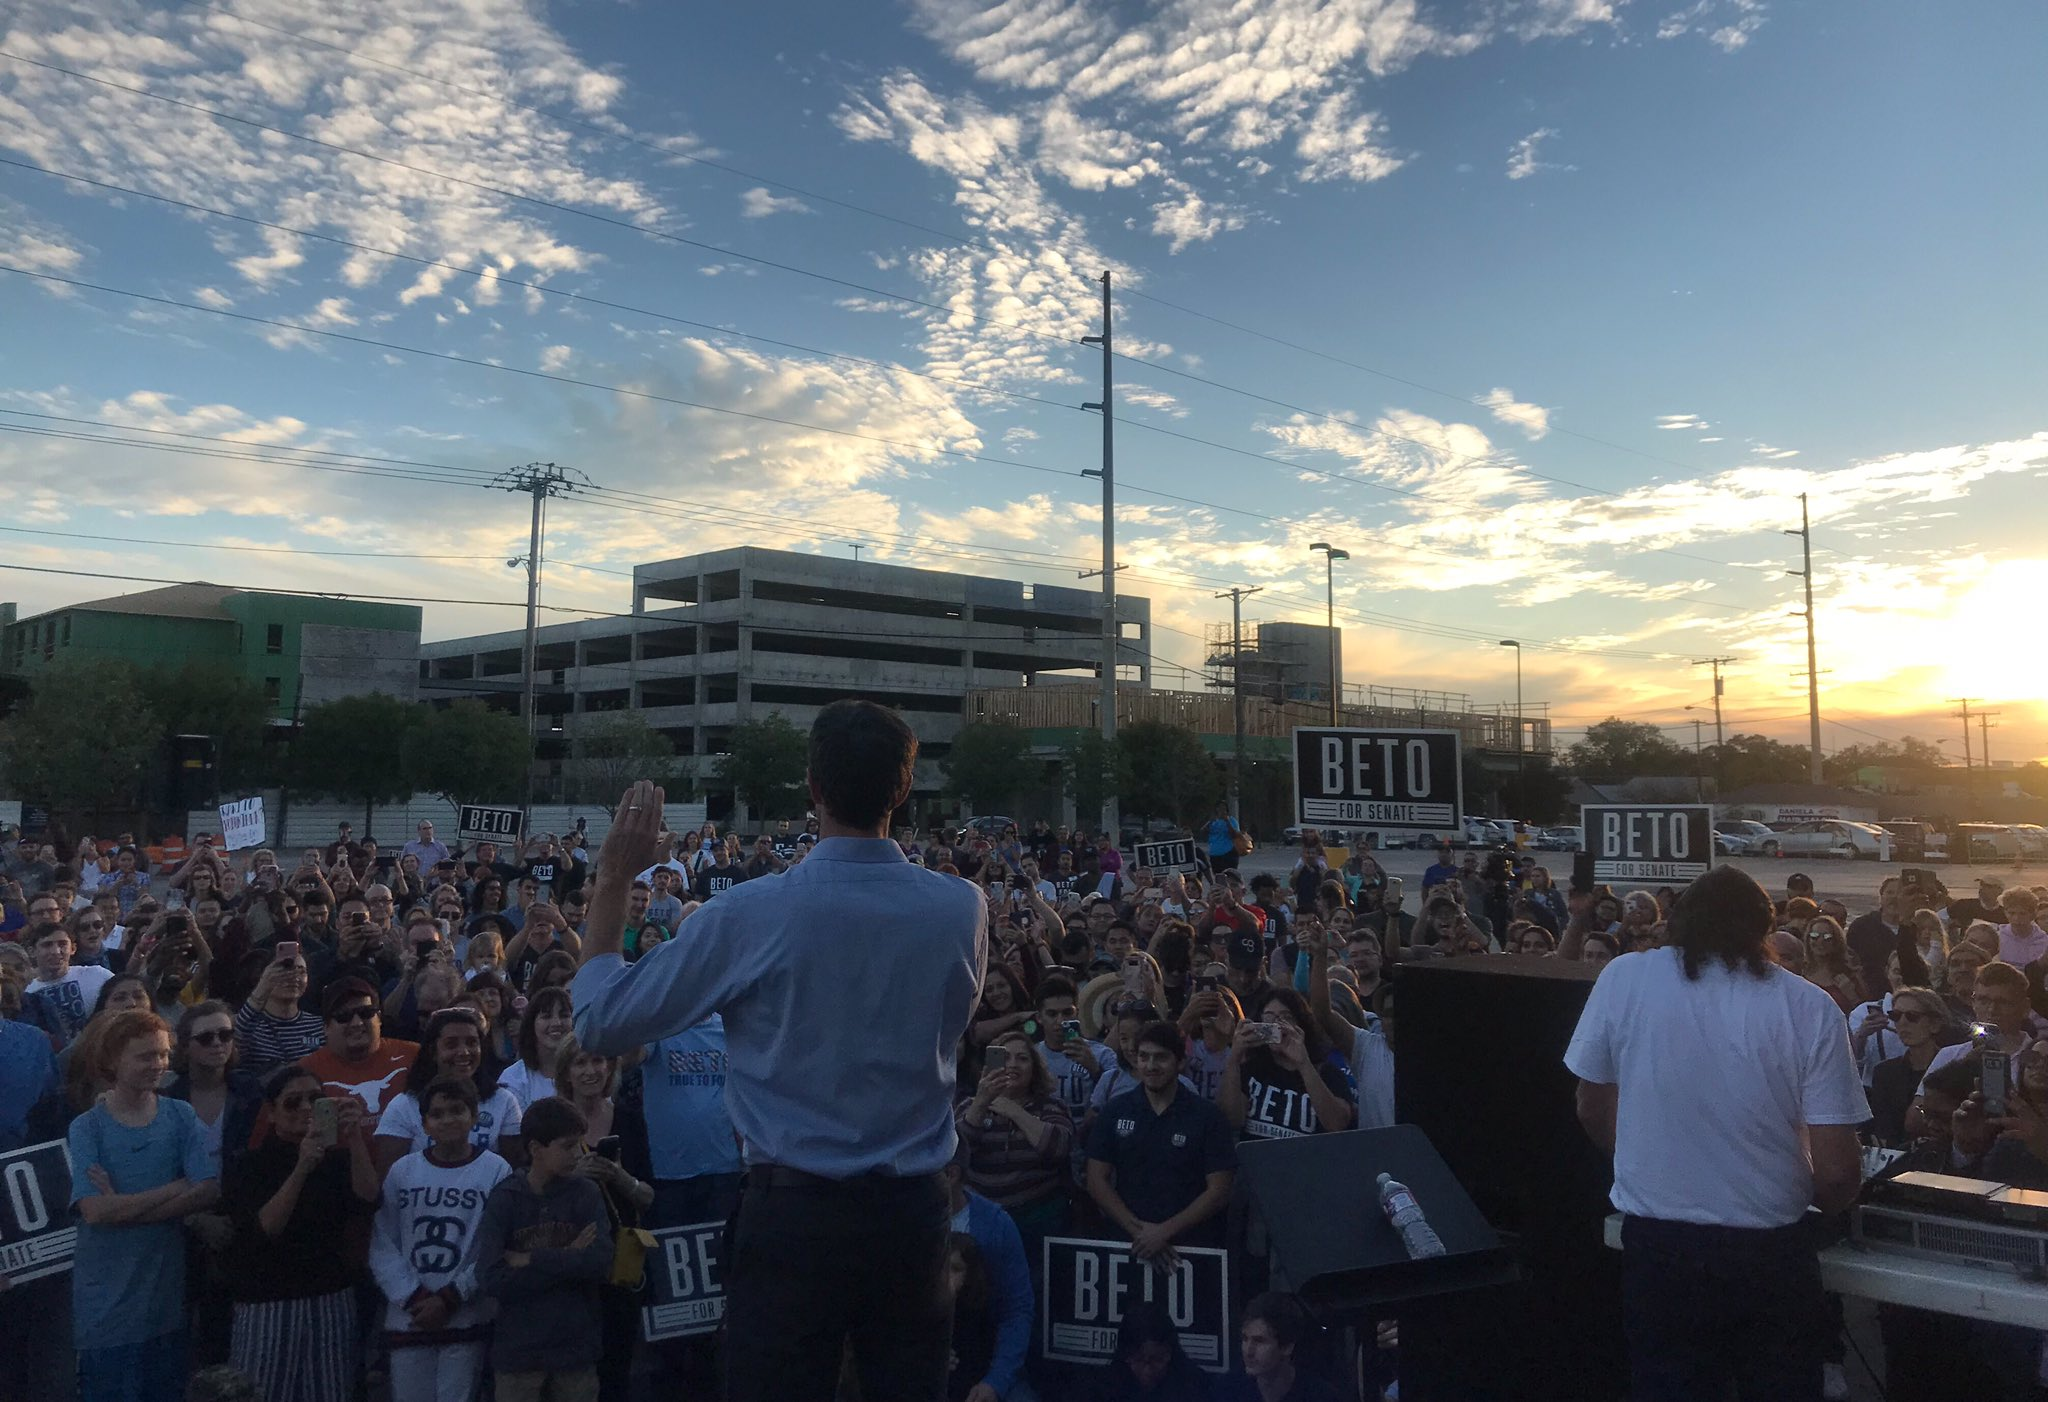 A beautiful sunset rally in west Dallas! So many good people coming together for our state and this country. https://t.co/2xjJiLTWQi